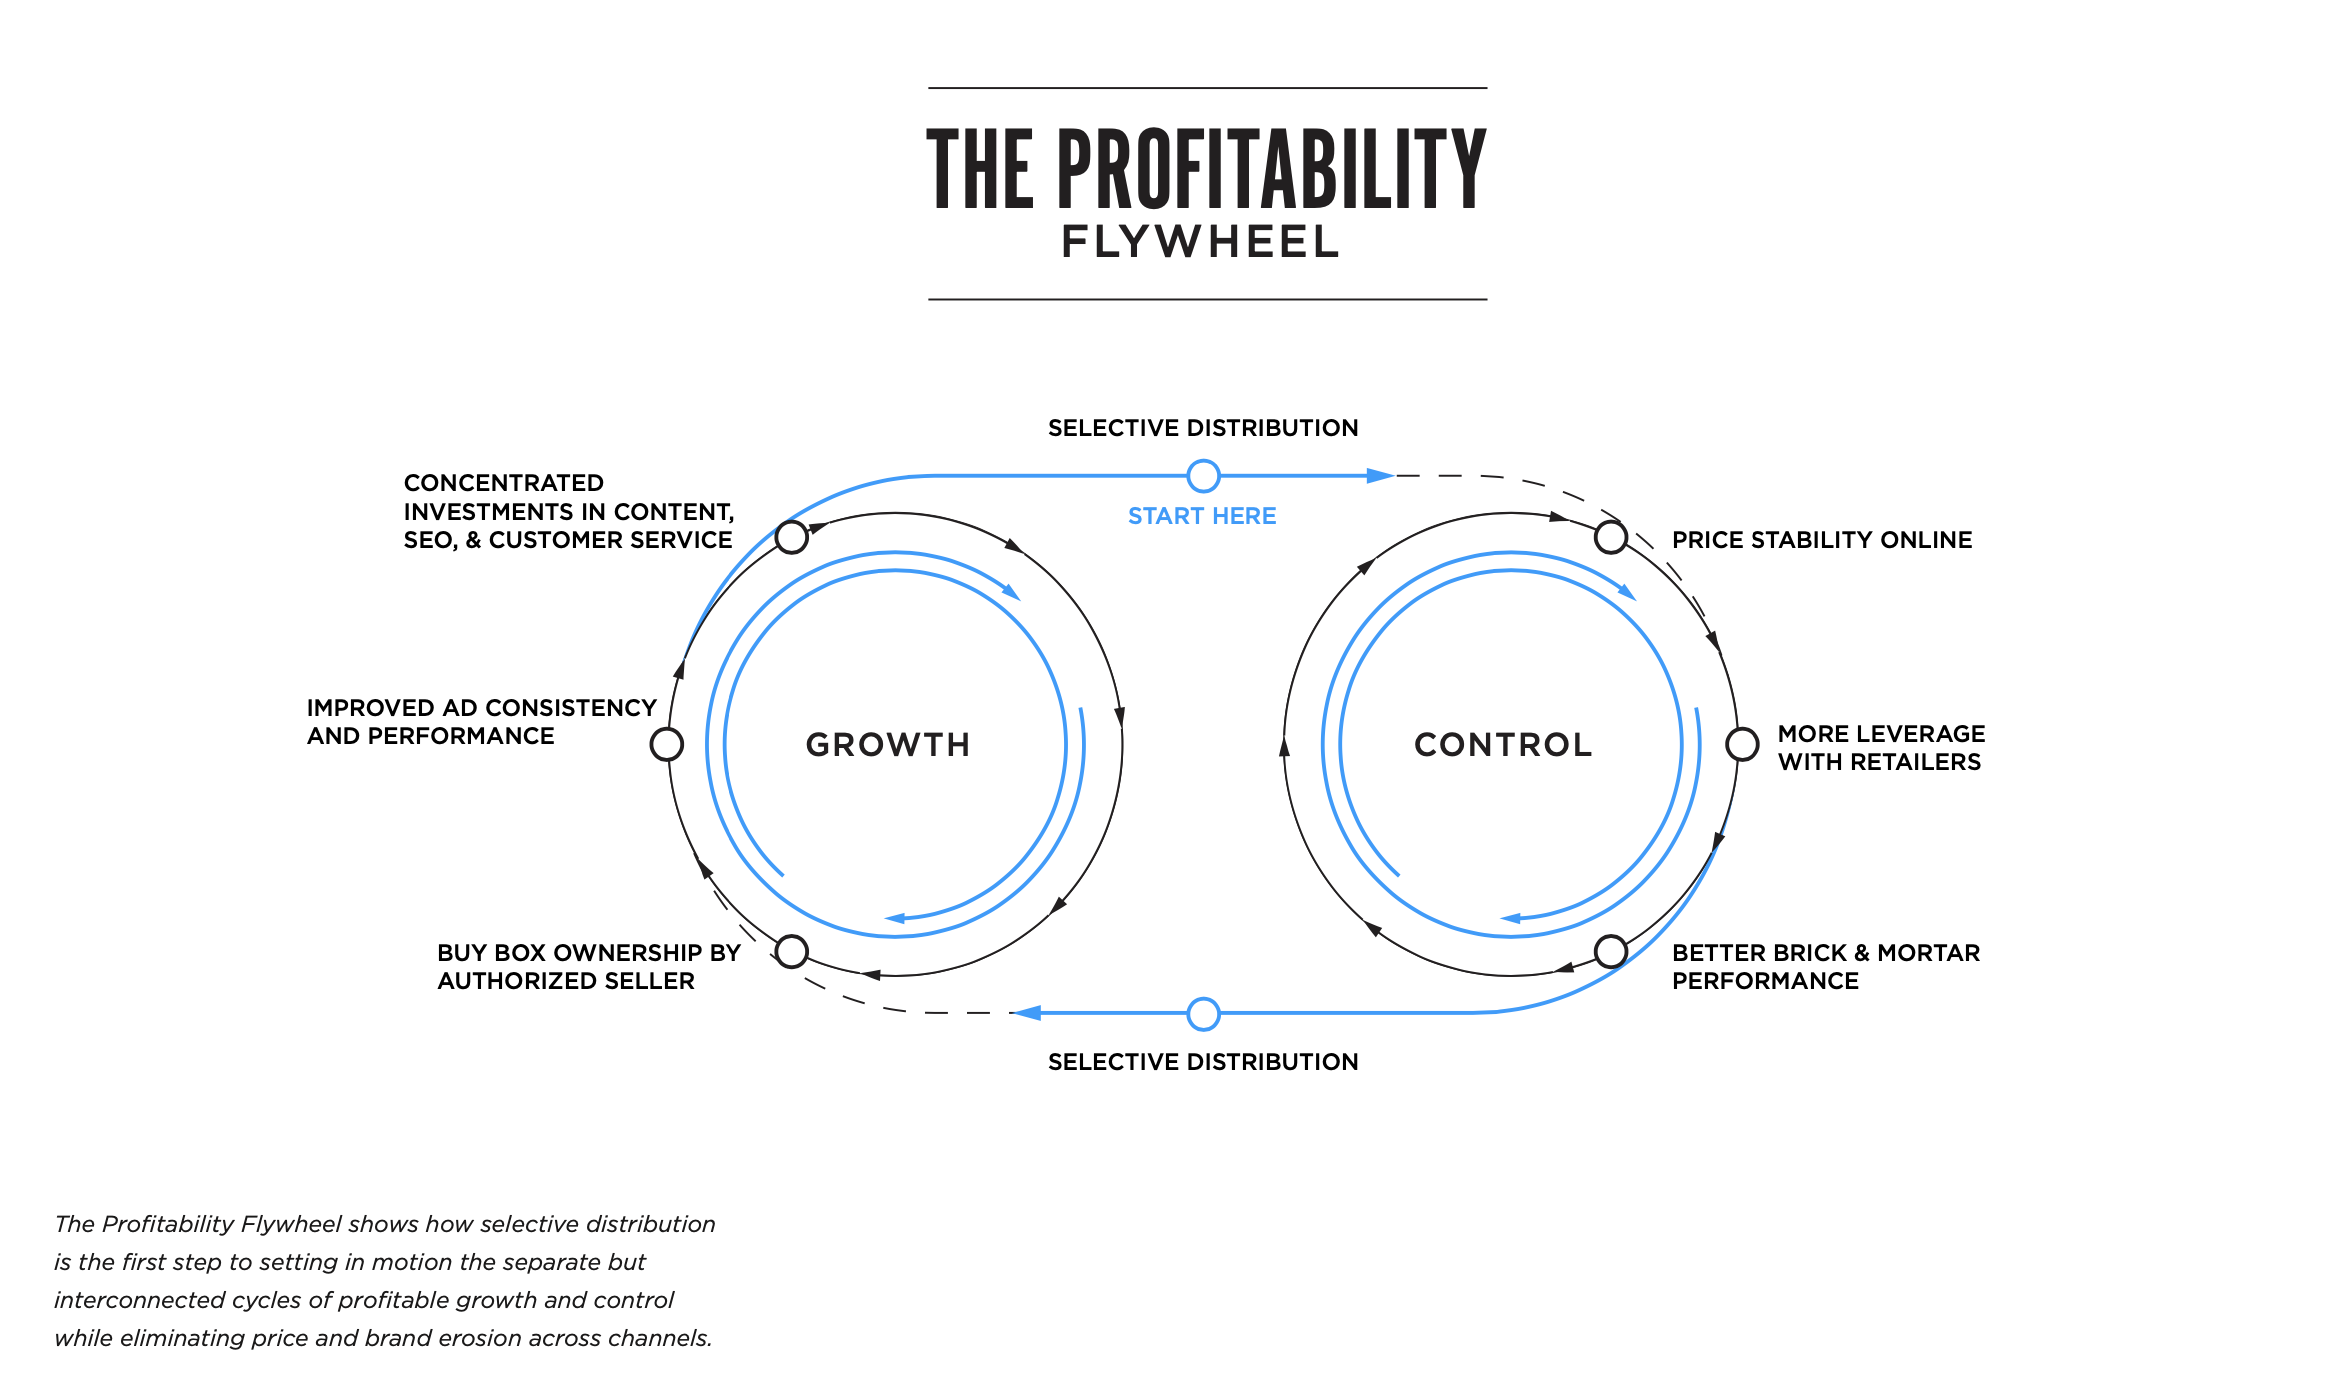 How the Profitability Flywheel for Ecommerce Works to Grow Sales and Control Online | Pattern